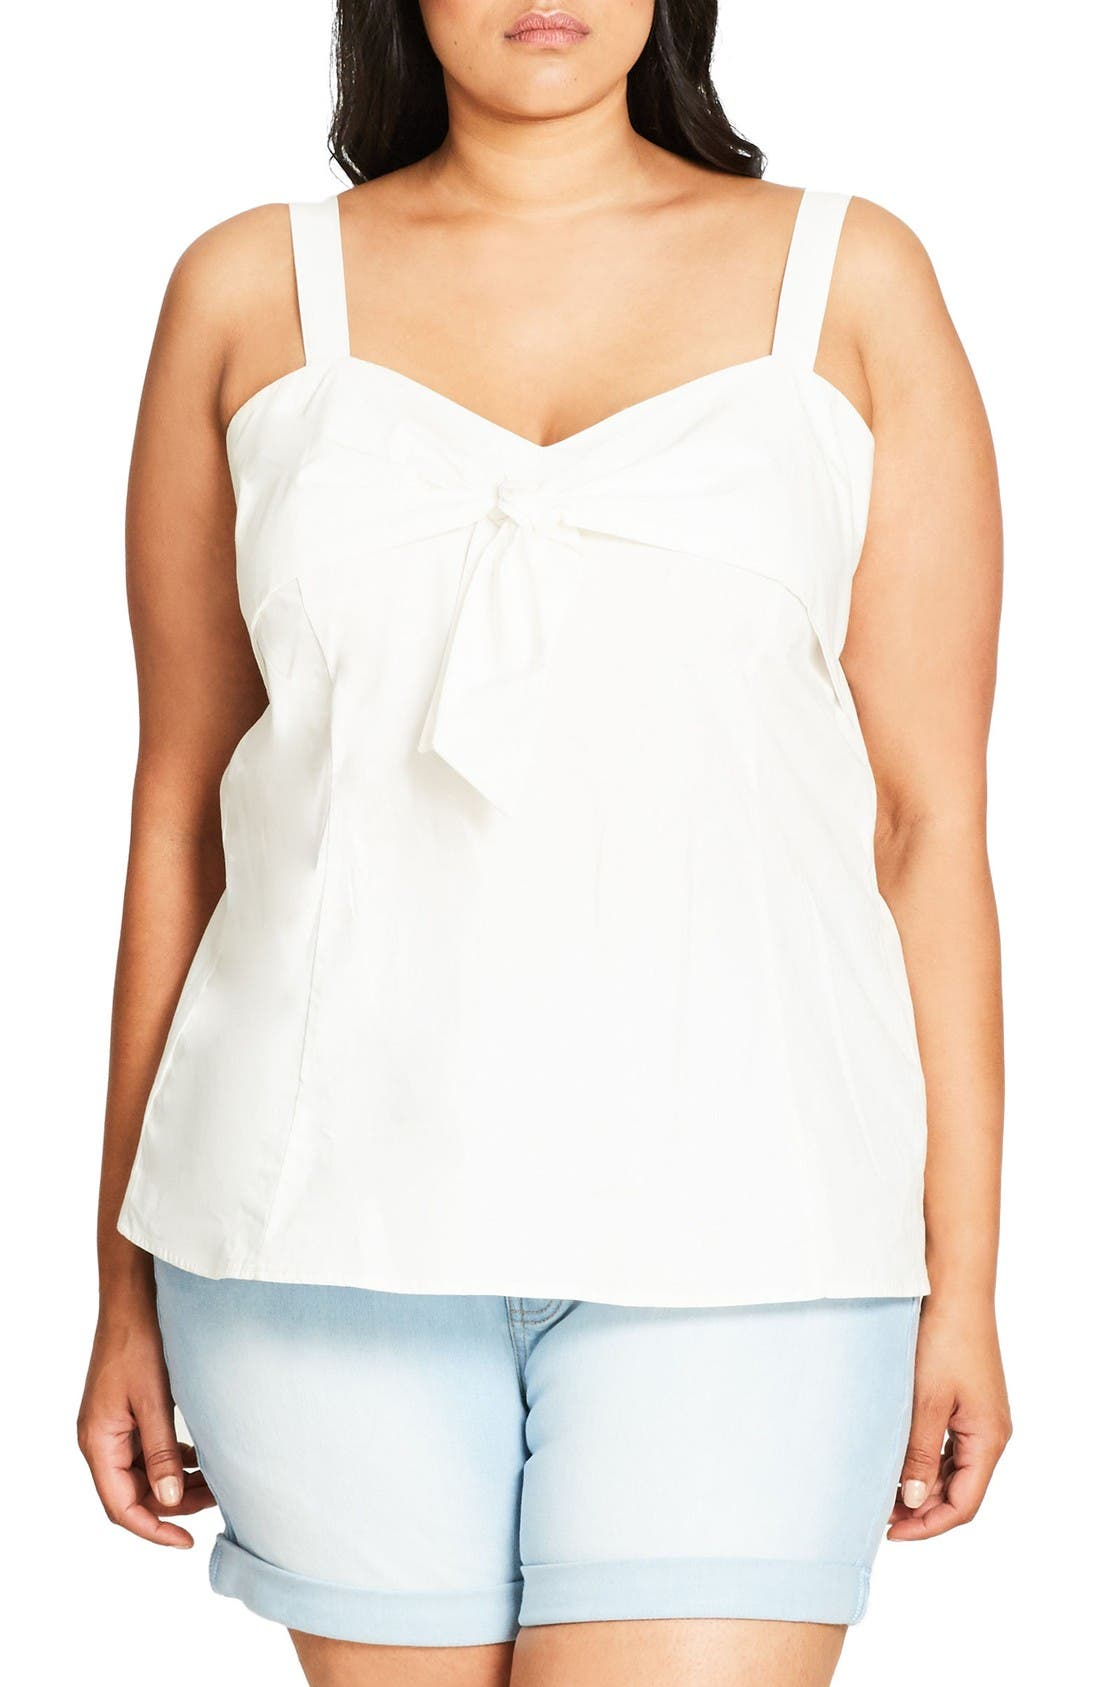 Main Image - City Chic Sweetie Bow Top (Plus Size)